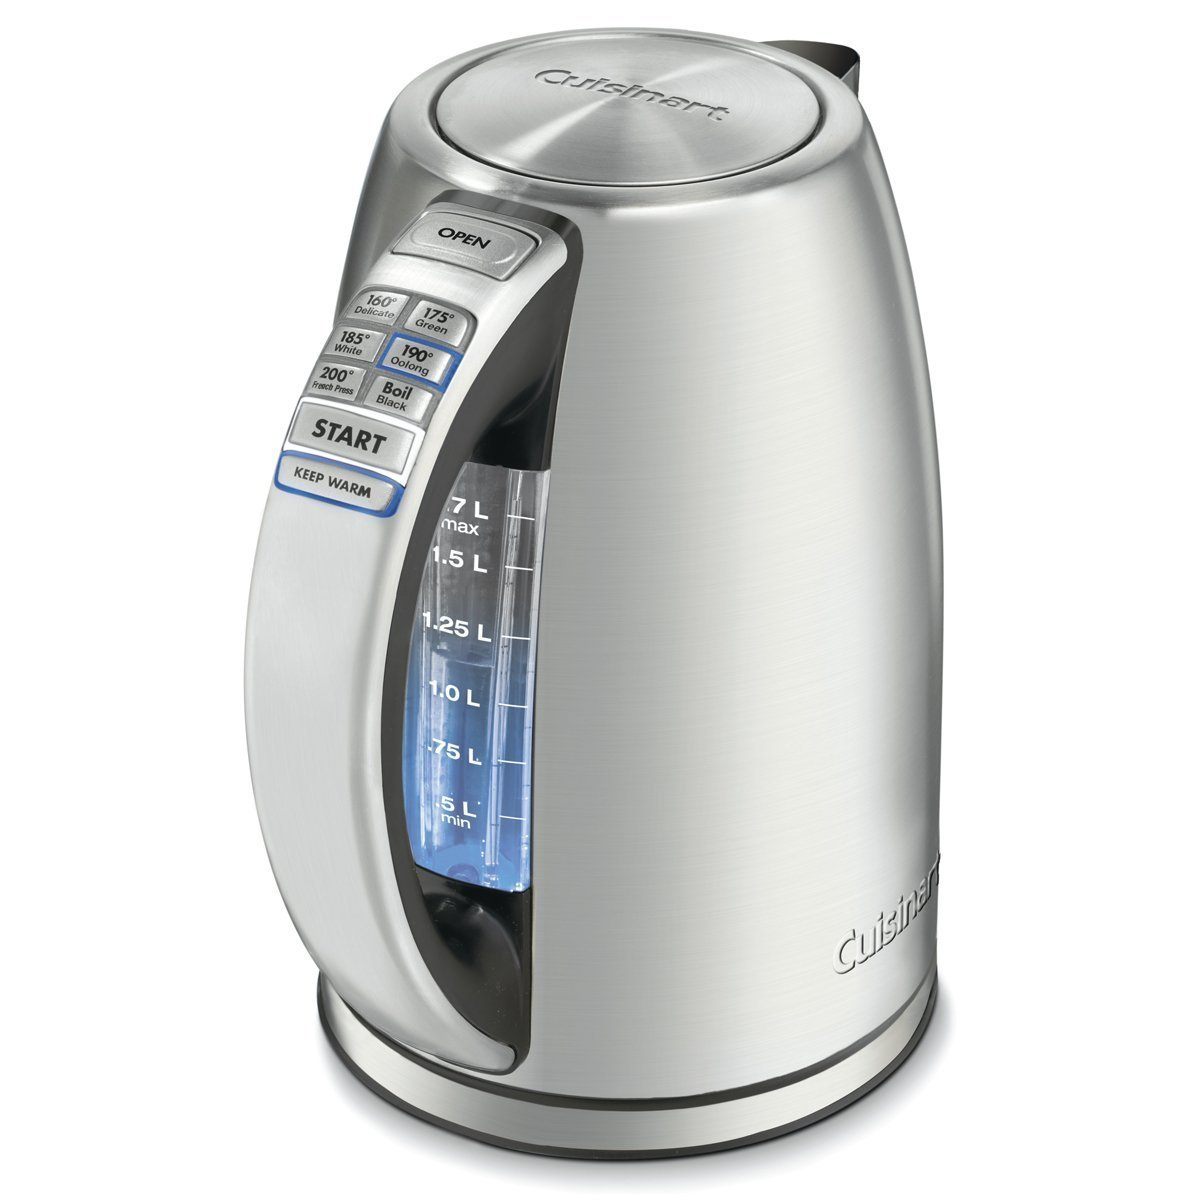 Cuisinart PerfectTemp Cordless Electric Kettle